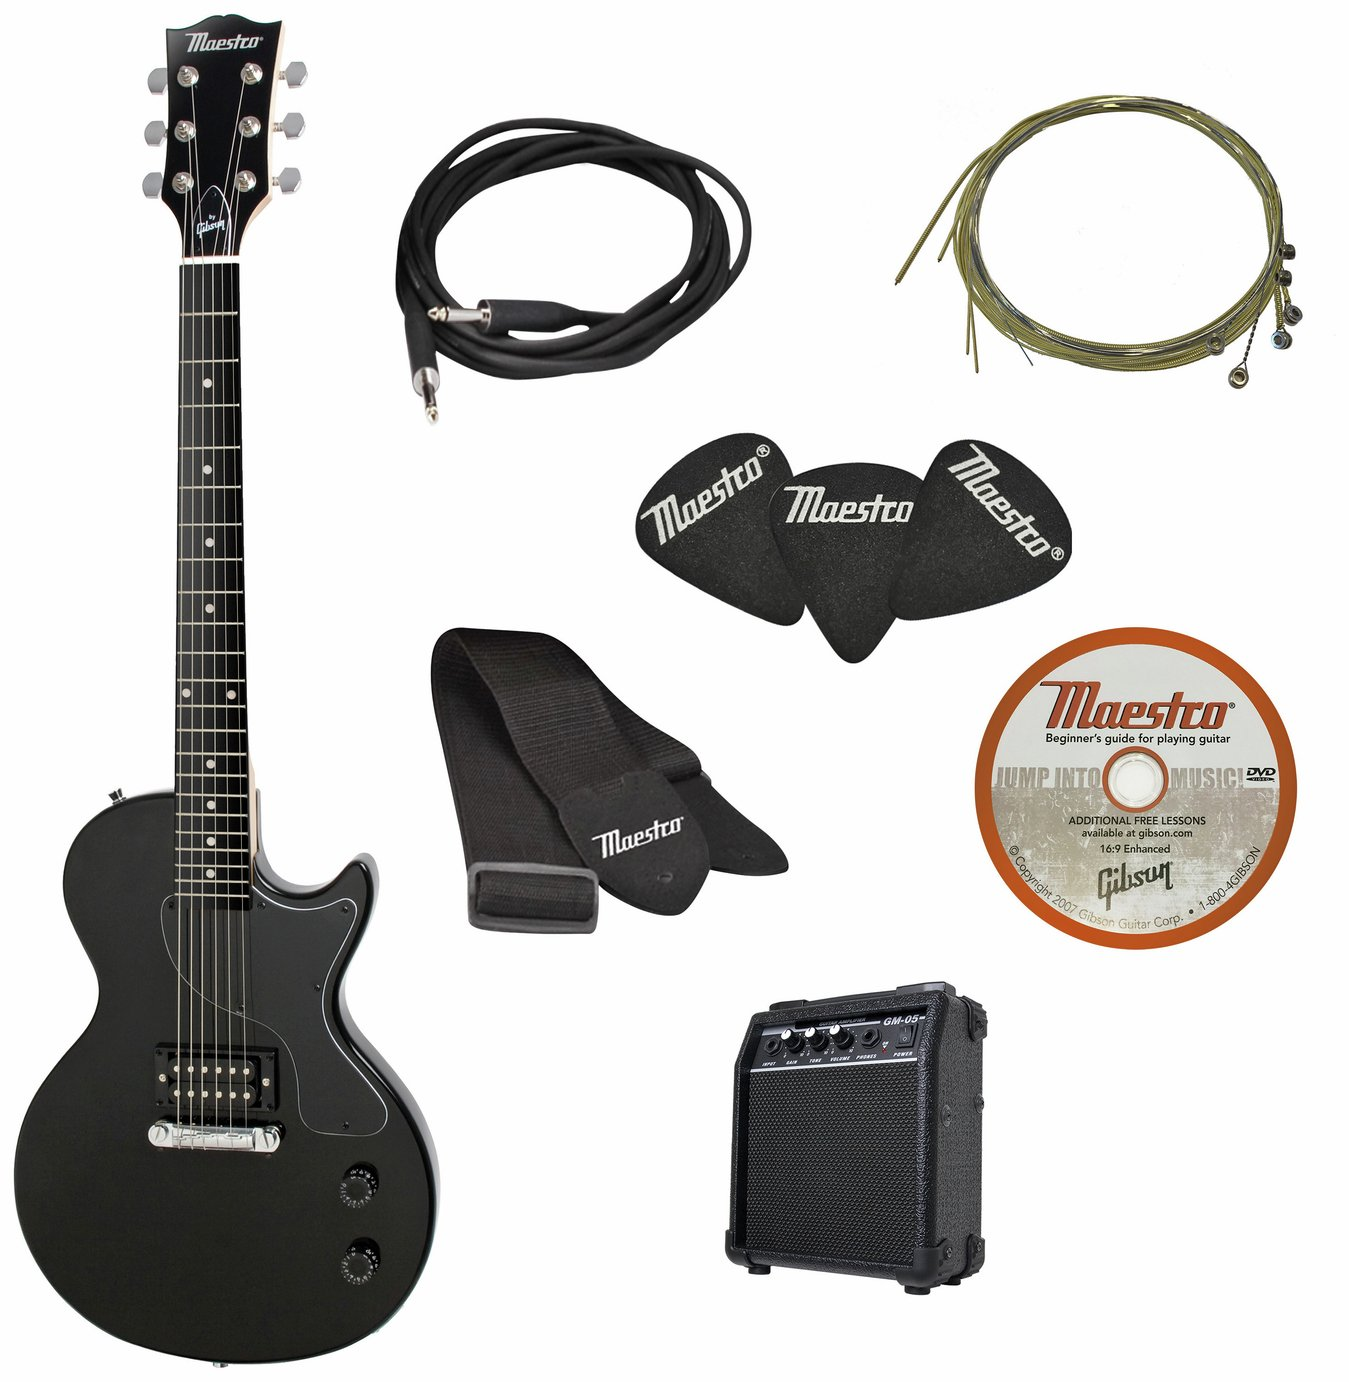 Maestro by Gibson Electric Guitar with Amp Pack - Black